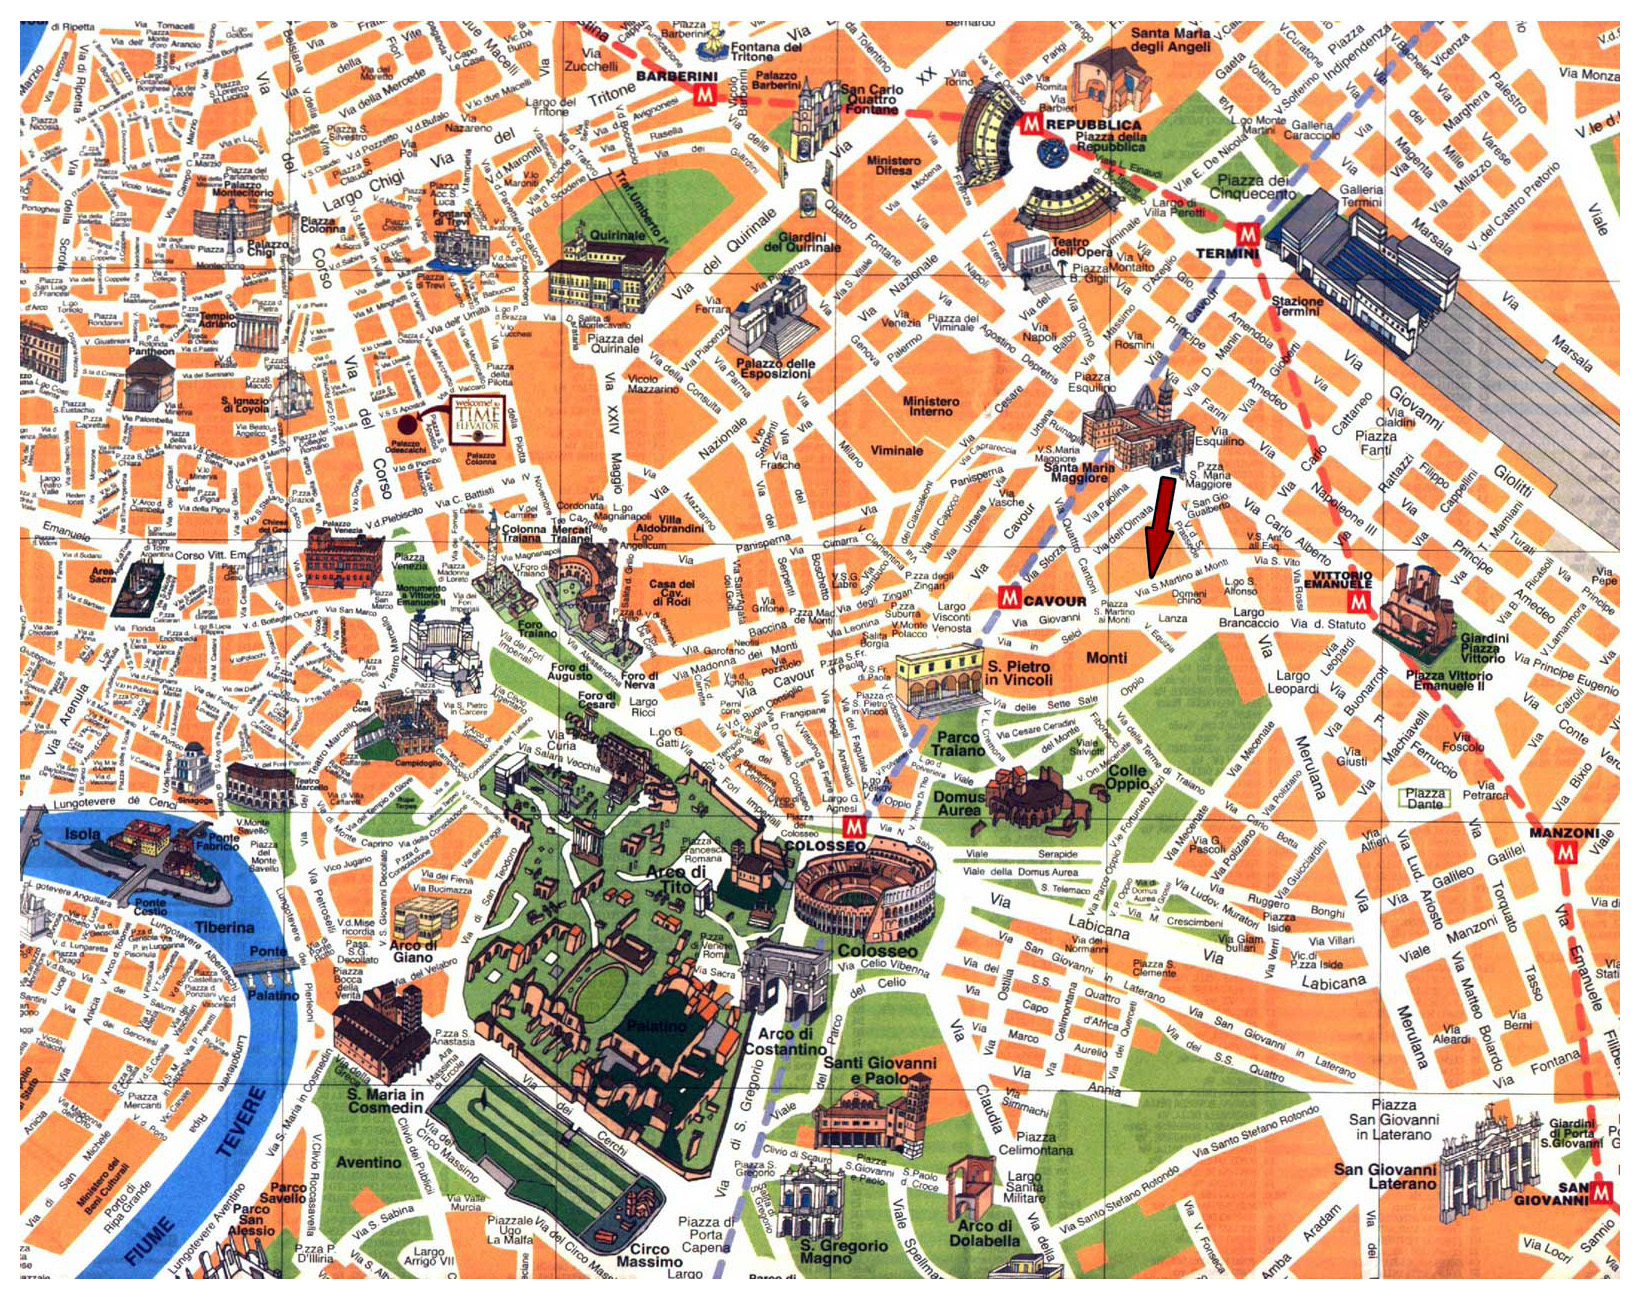 Detailed tourist map of Rome city center | Rome | Italy | Europe ...